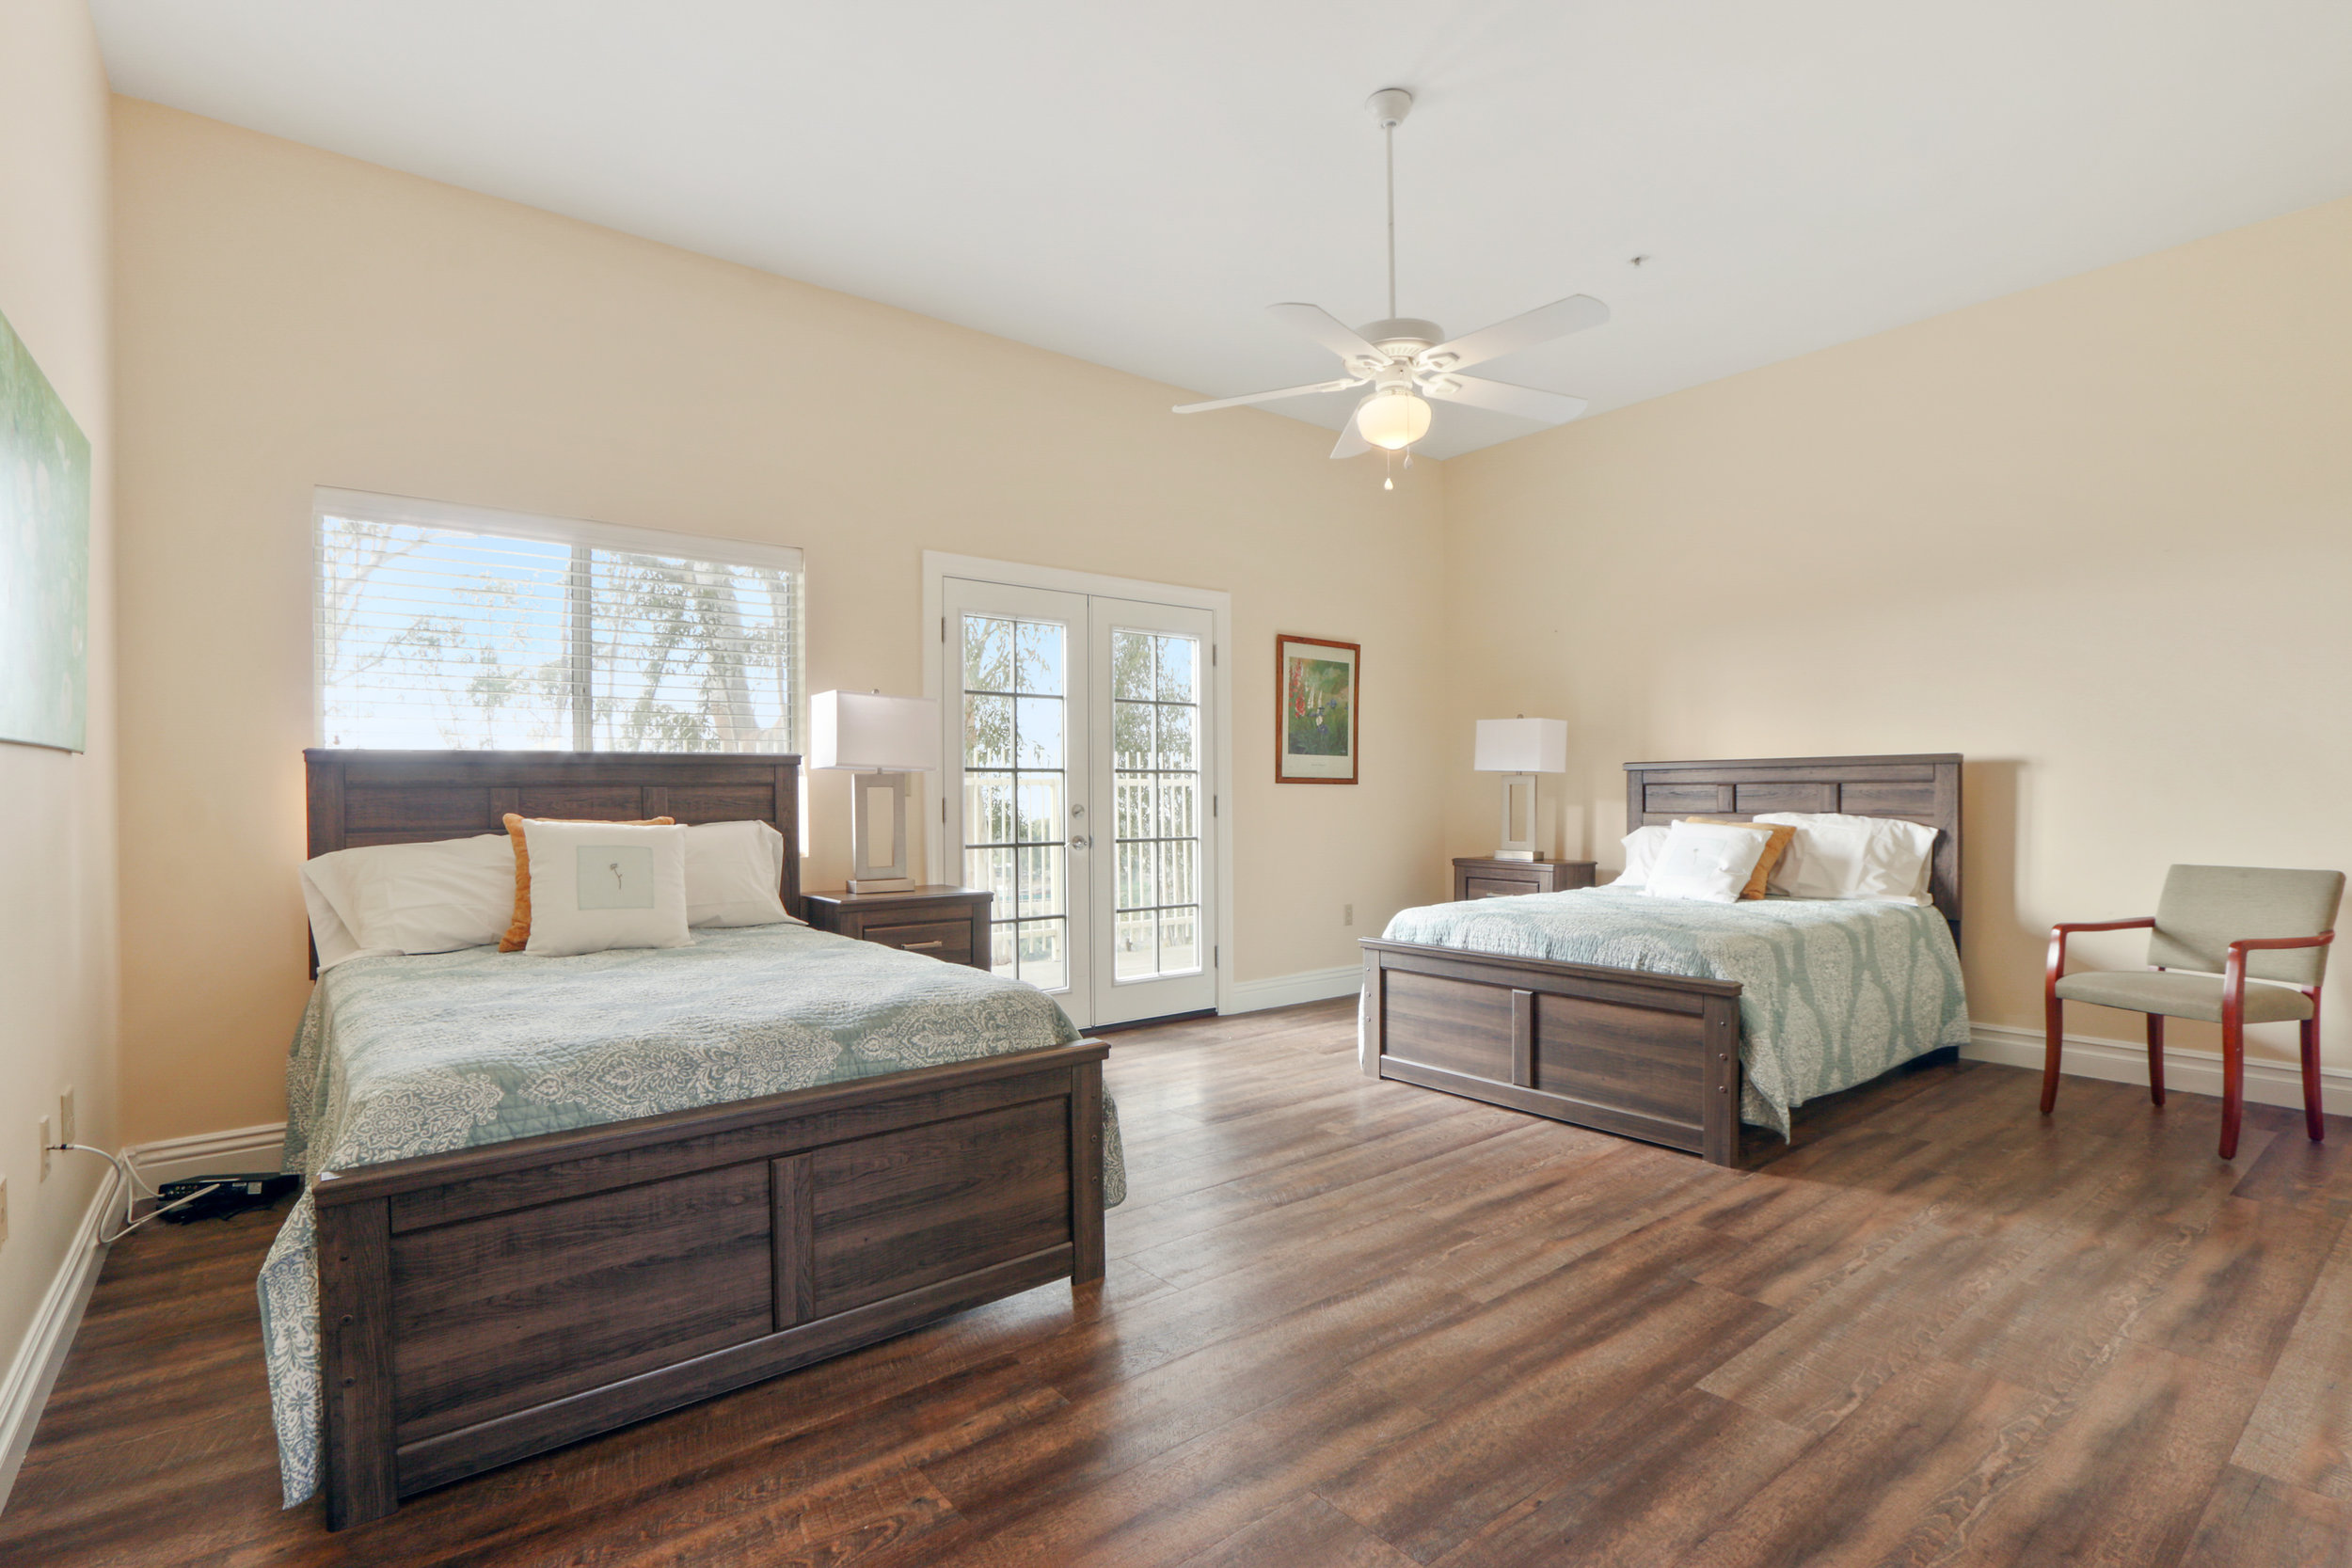 ROOM #4 - Lucille Ball - This bedroom offers natural light and overlooks the city.